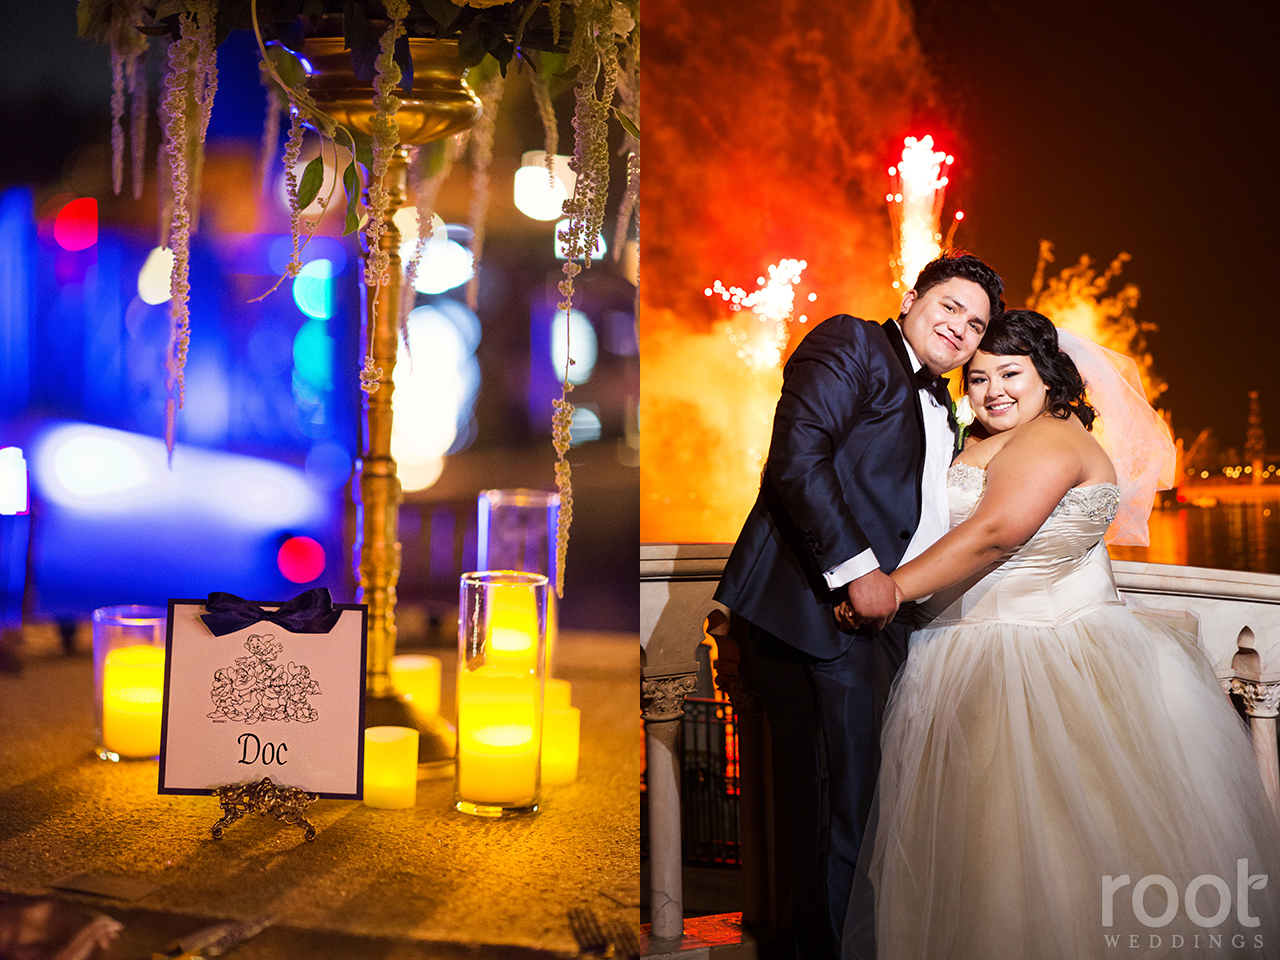 orlando-wedding-photographer-31